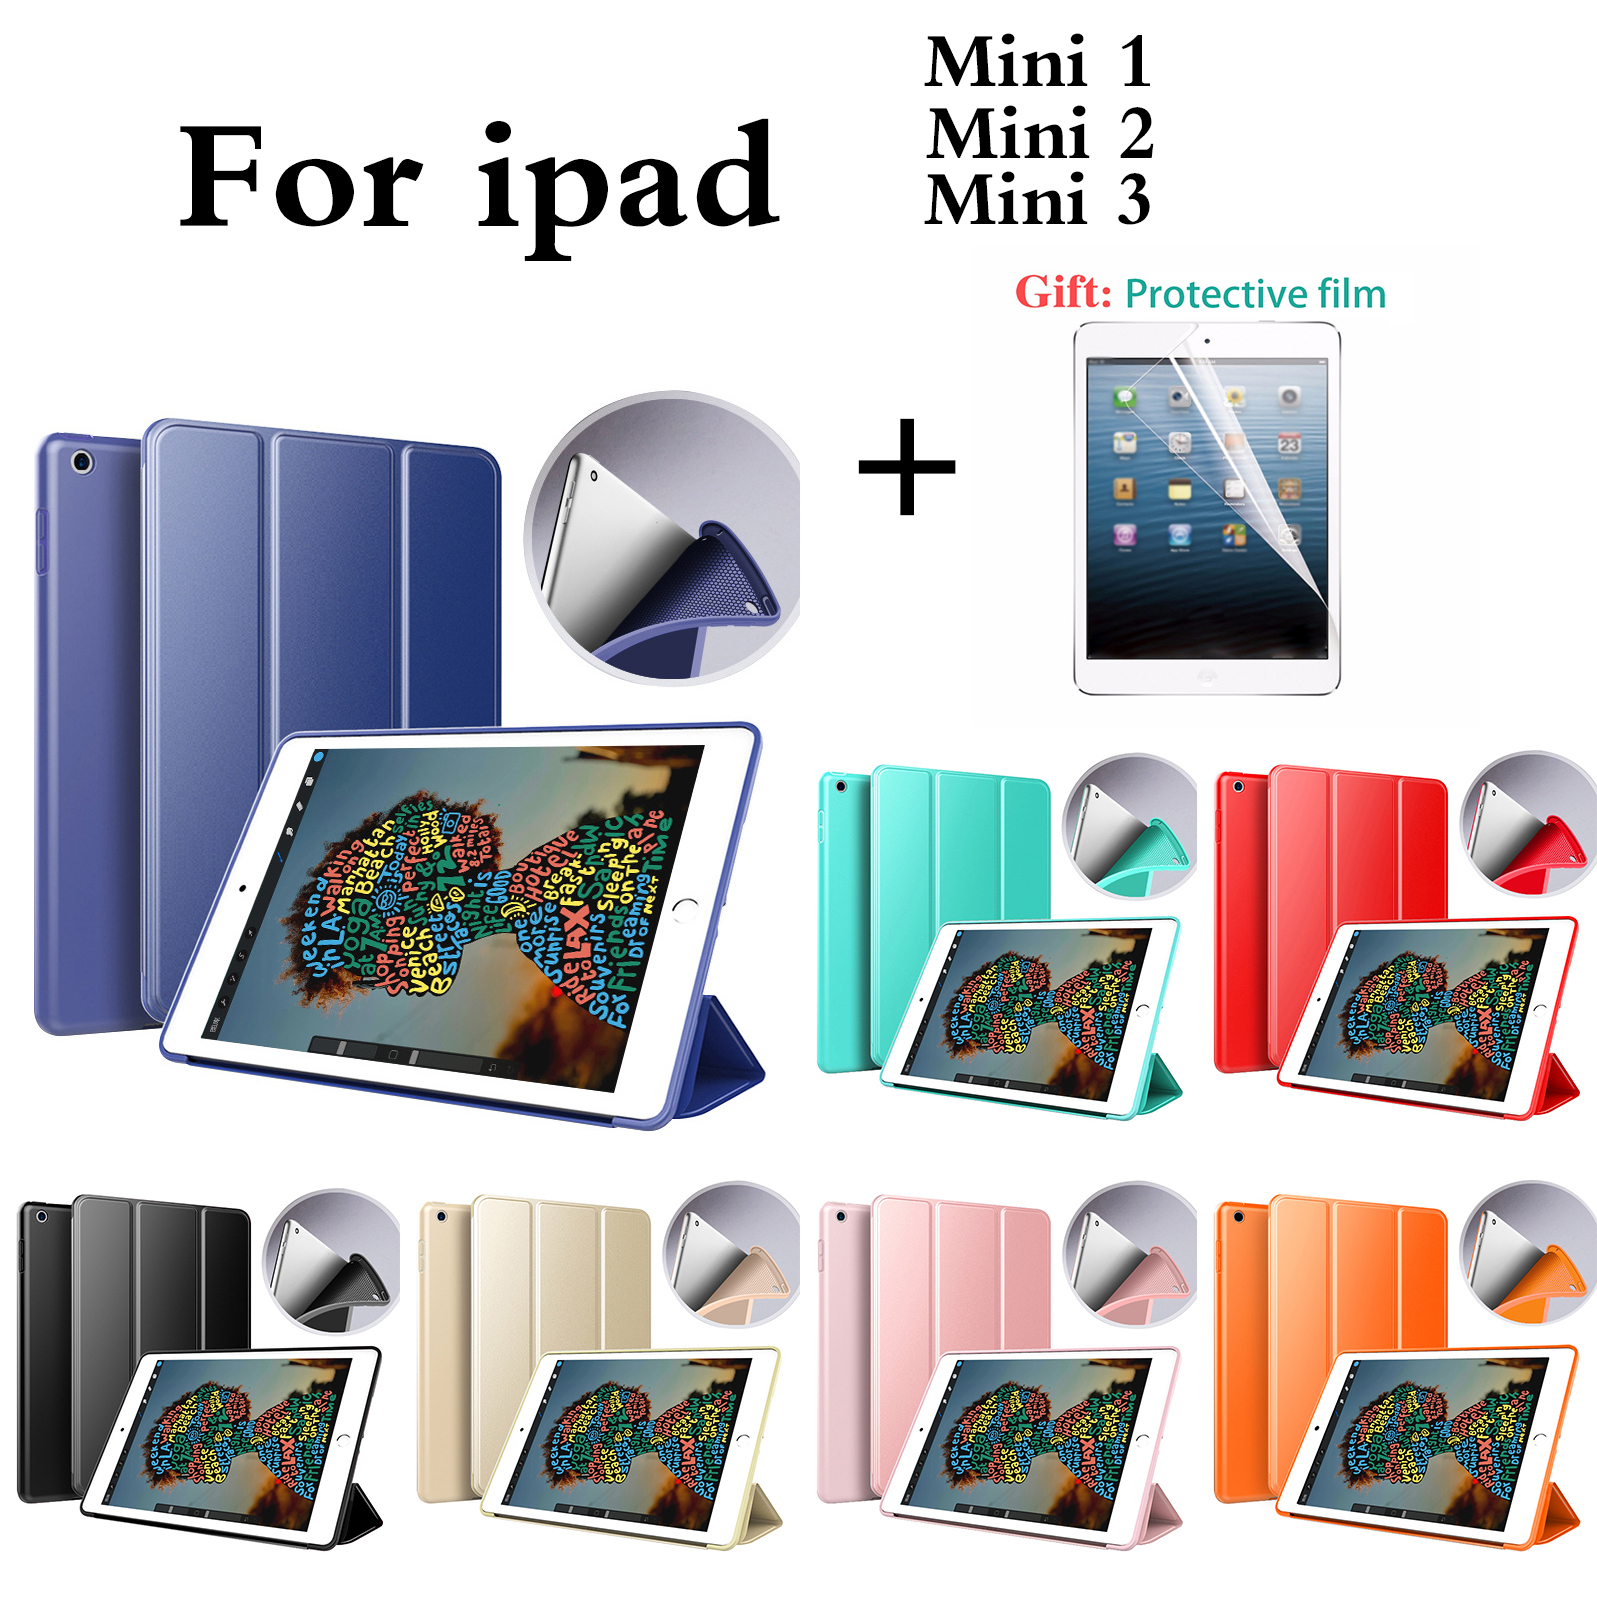 Case For <font><b>iPad</b></font> <font><b>Mini</b></font> 3 2 1 PU Leather Auto Sleep protective shell for Apple <font><b>iPad</b></font> <font><b>mini</b></font> 1/<font><b>mini</b></font> 2/<font><b>mini</b></font> 3 Cover + Screen Protector image